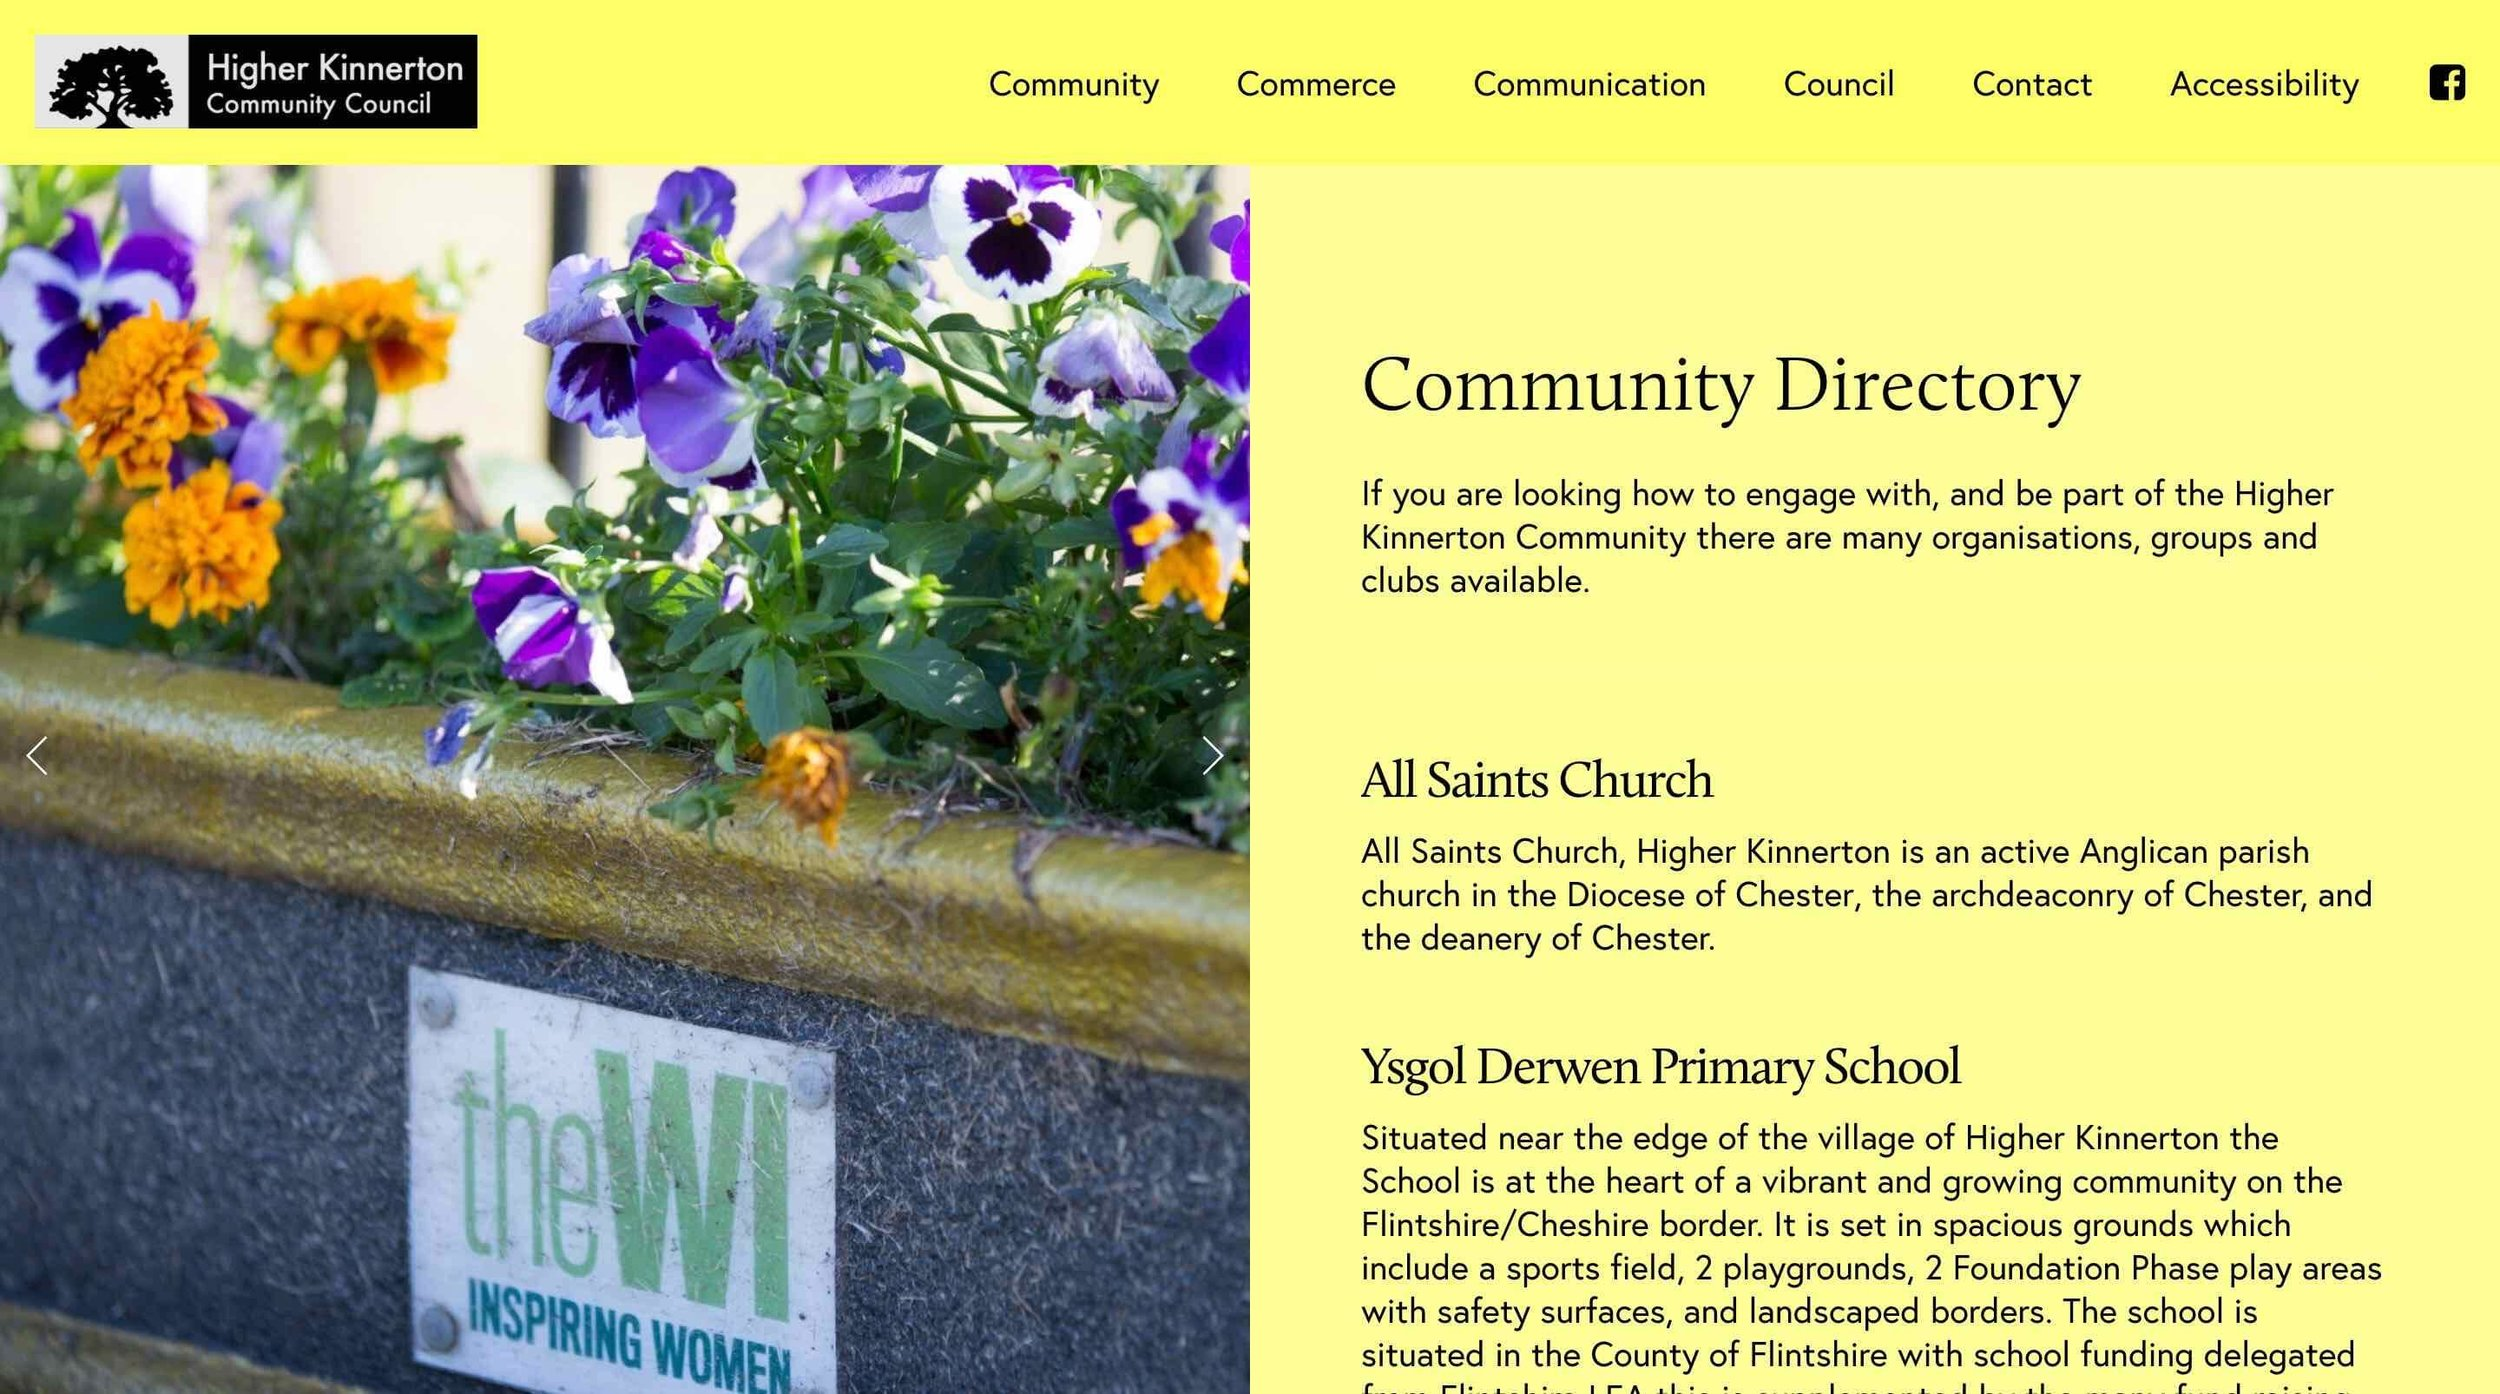 Higher Kinnerton Community Council: Accessibility Features